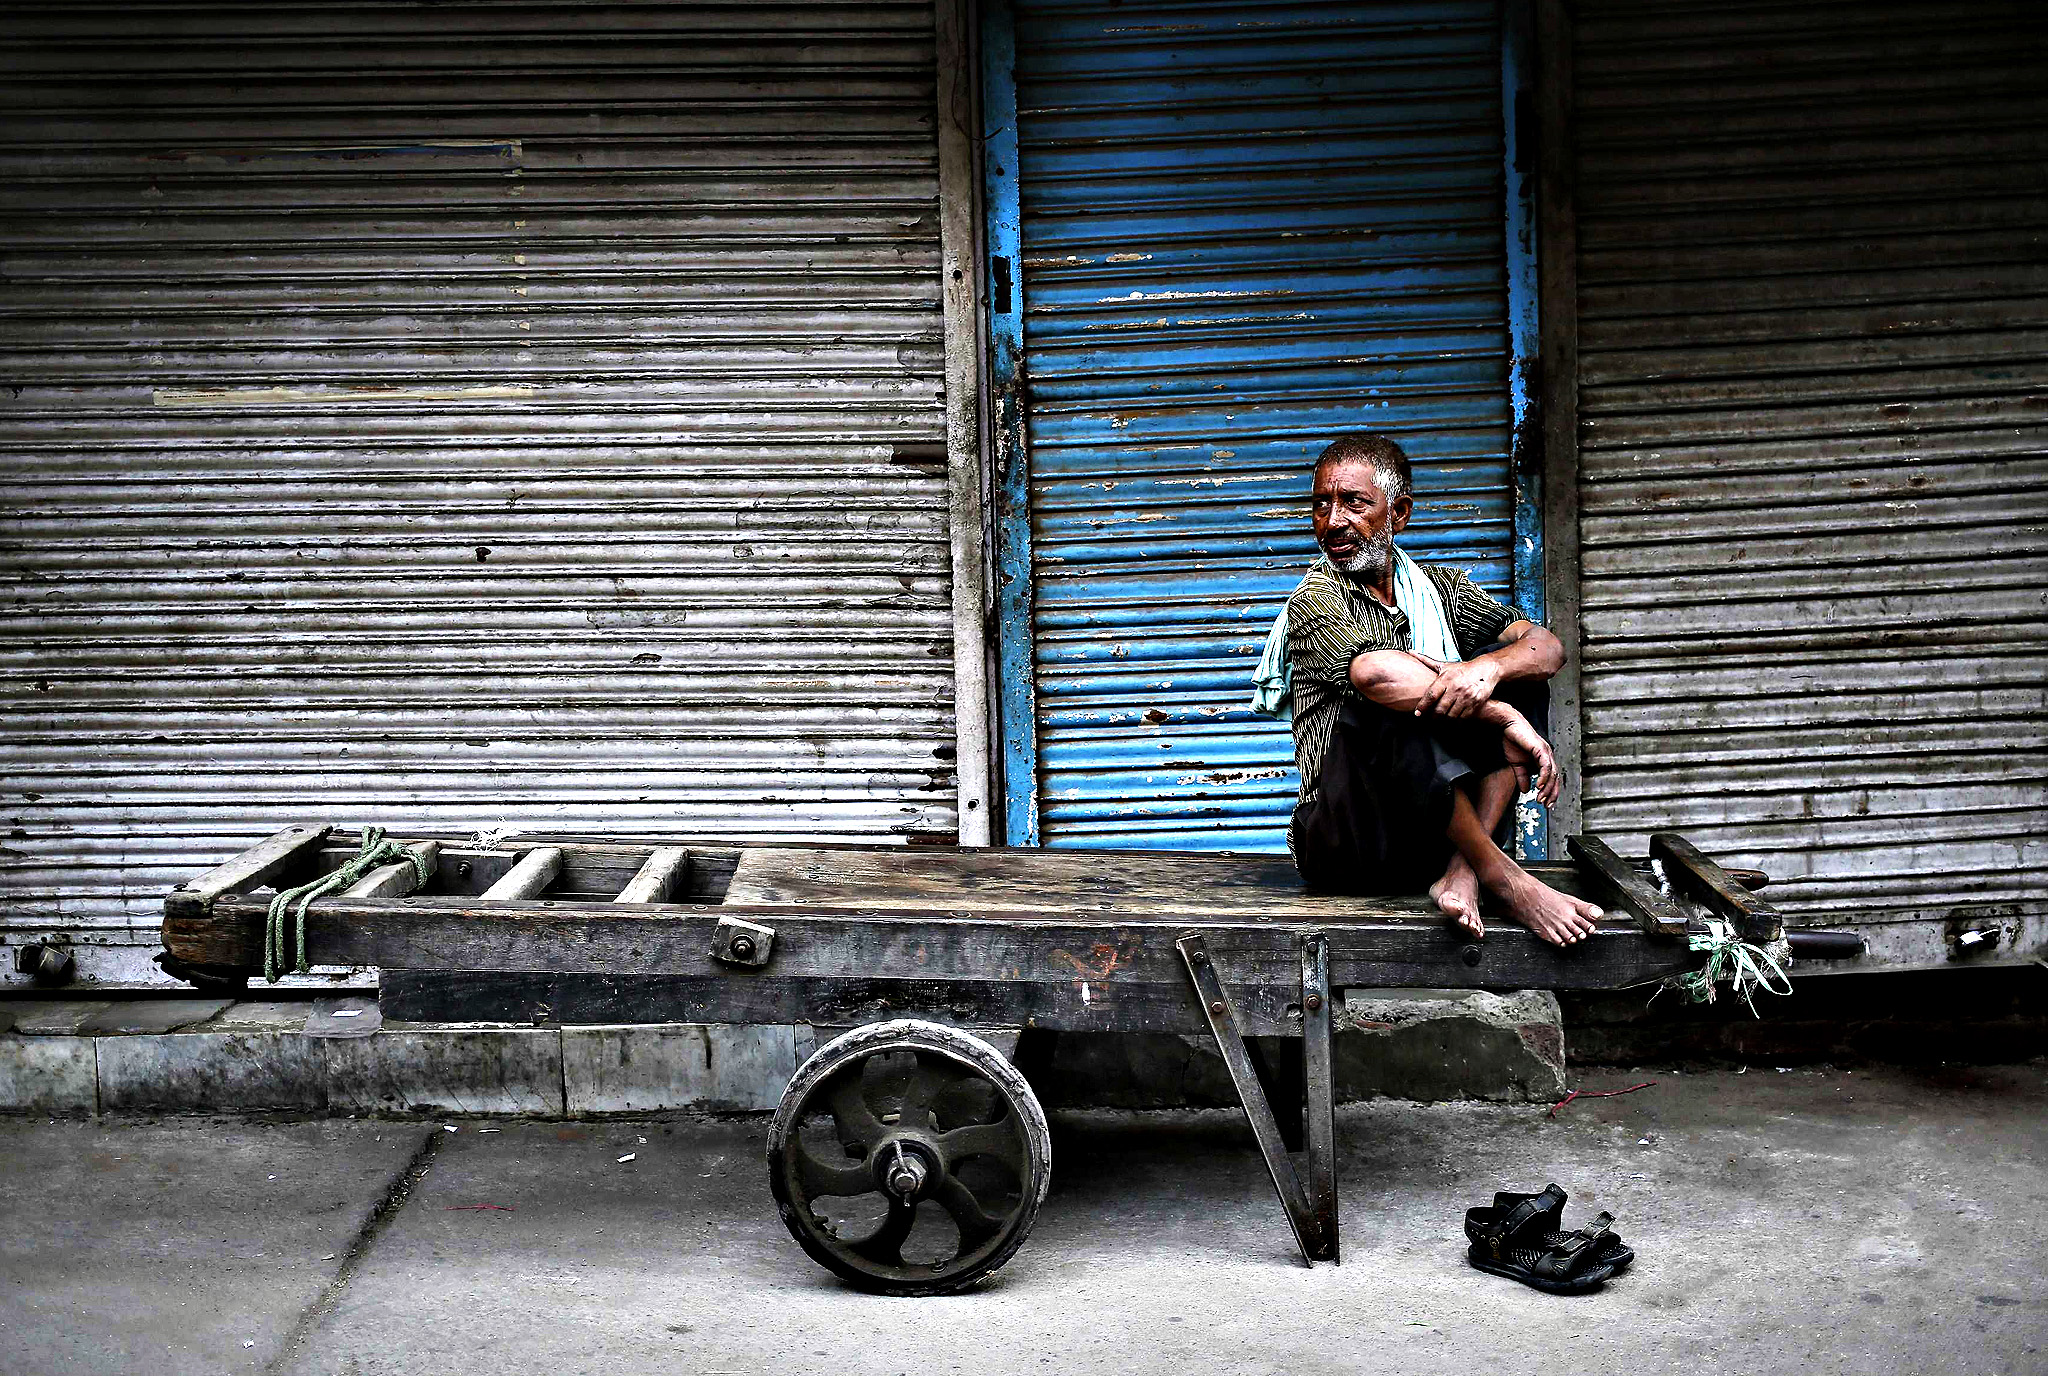 A migrant labourer sits on a handcart along a roadside in the old quarters of Delhi August 8, 2014.